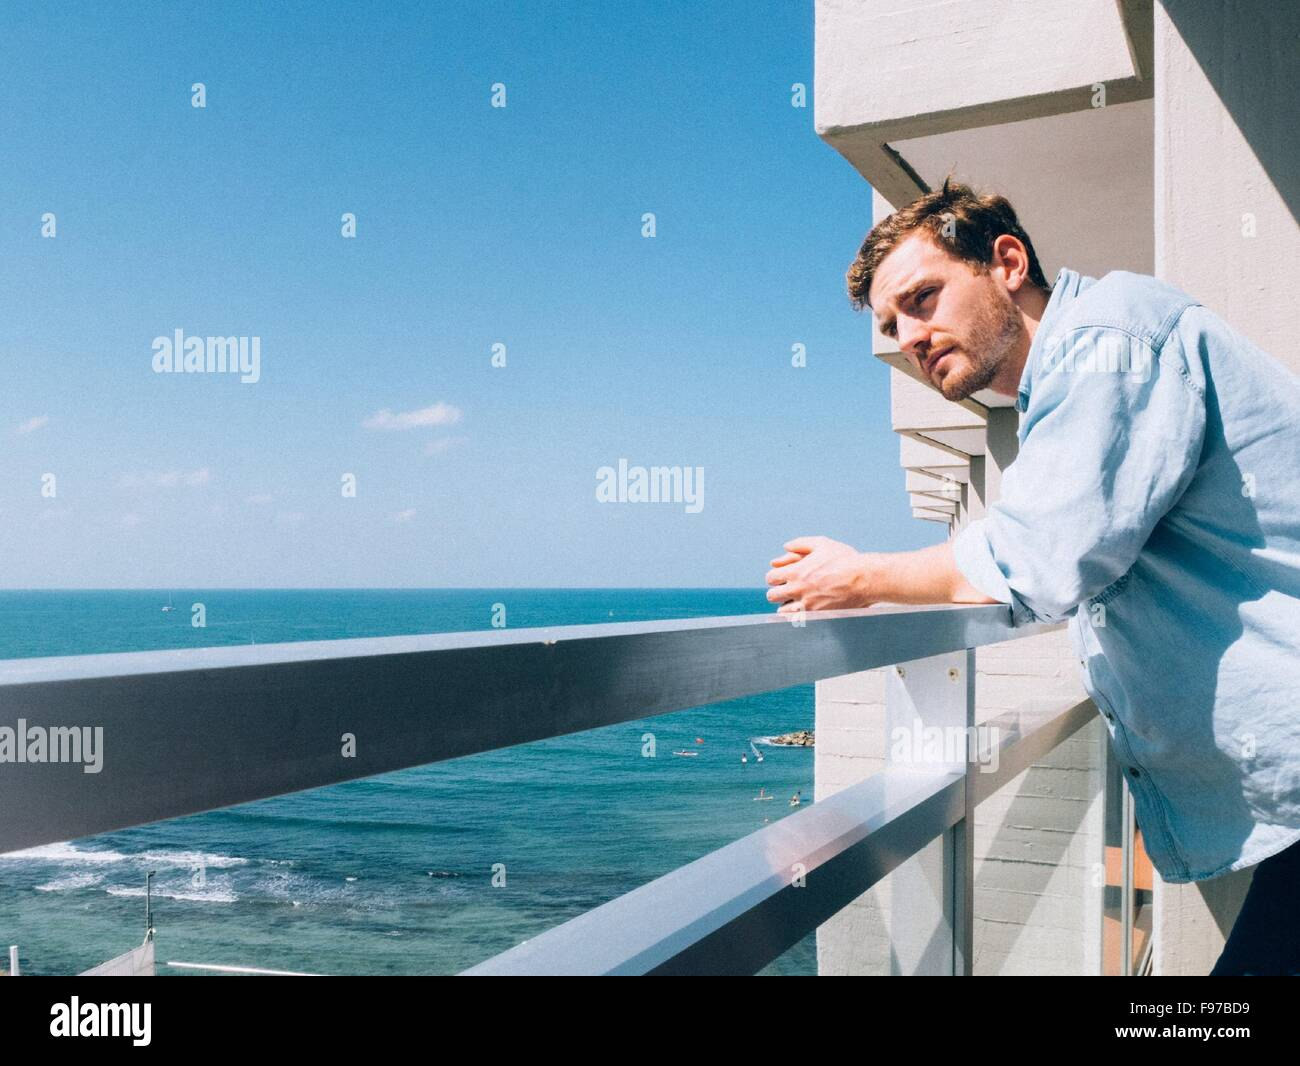 man looking away while leaning on railing stock photo 91746405 alamy